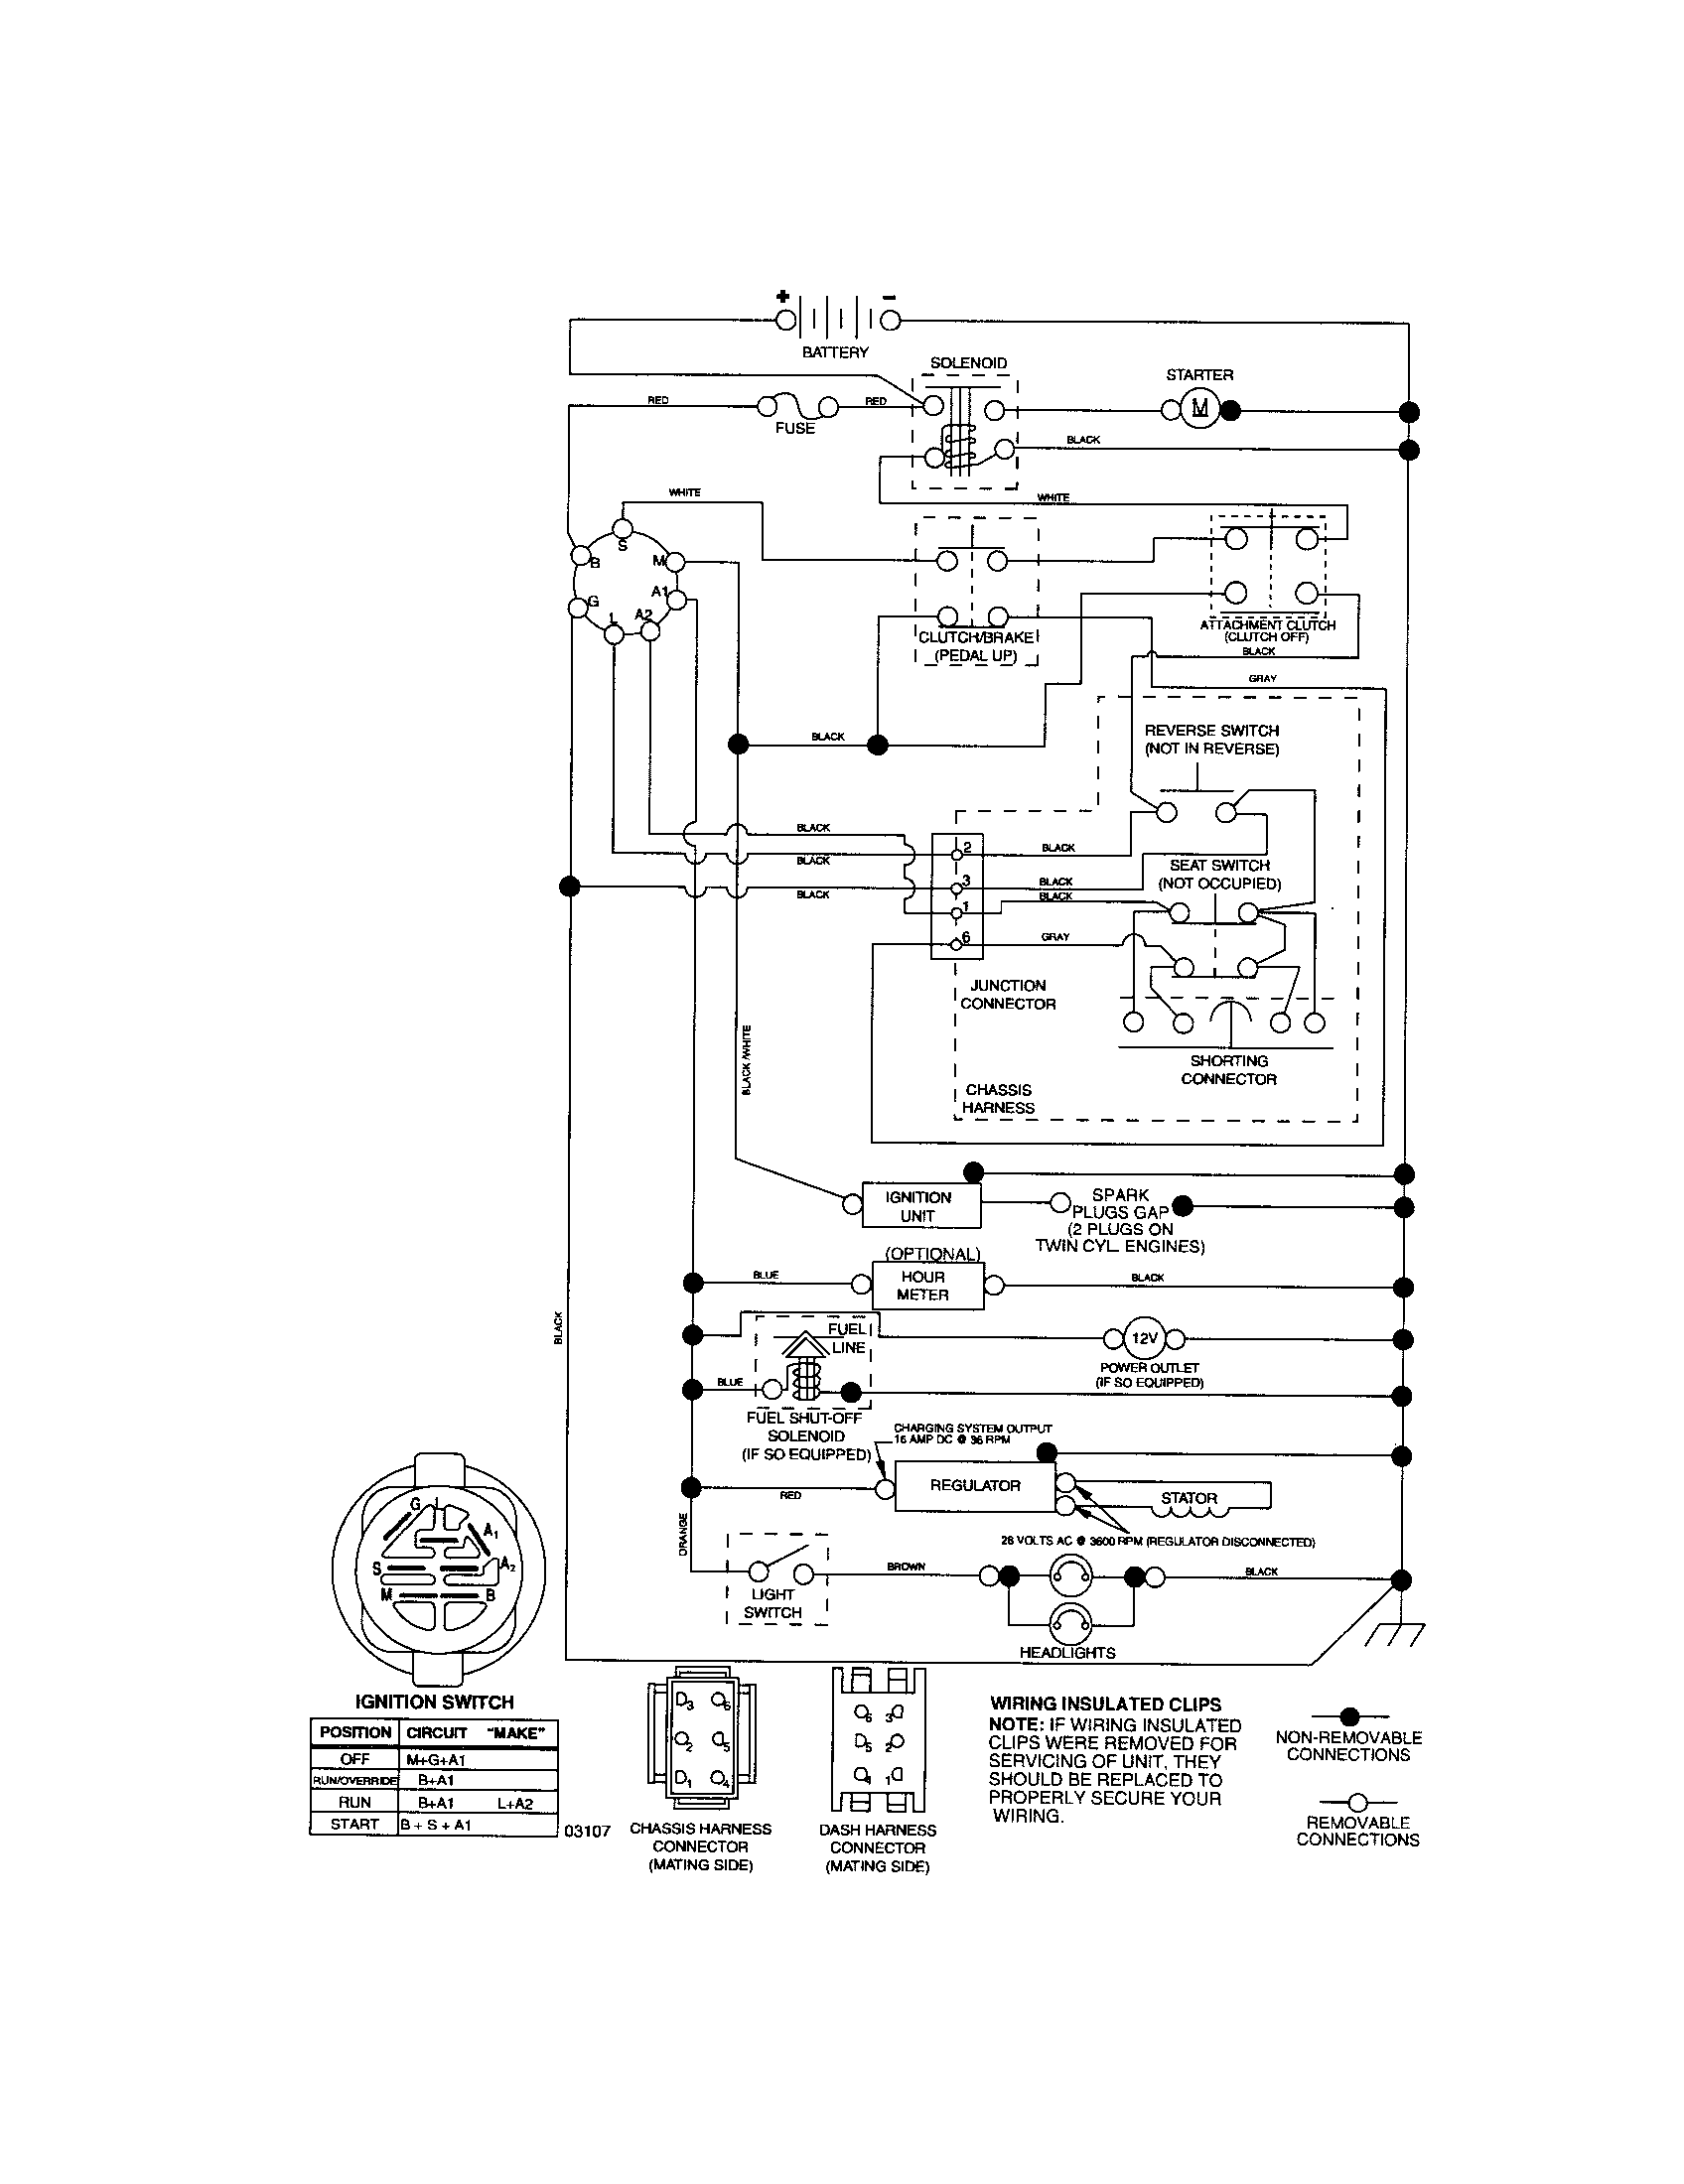 Wiring Diagram Craftsman Riding Lawn Mower I Need One For Craftsman Riding Lawn Mower Riding Lawn Mowers Lawn Tractor